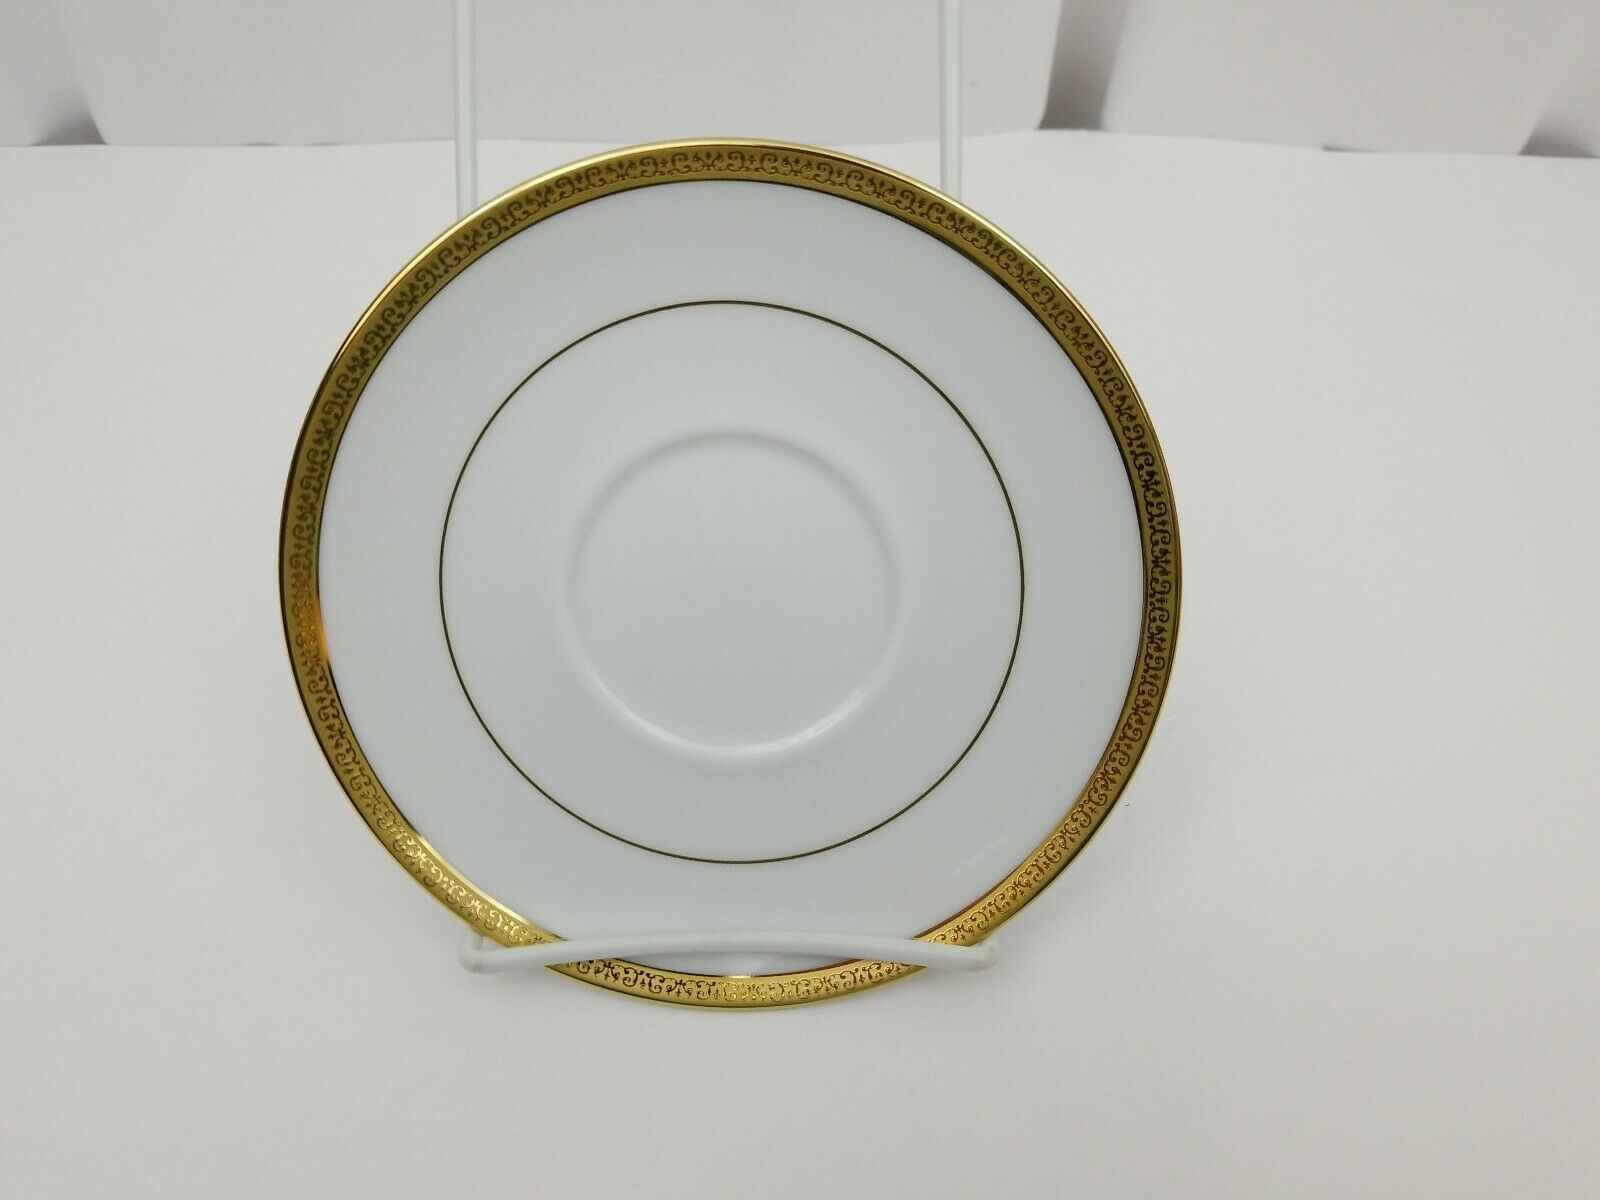 Charter Club Home Grand Buffet Gold Saucers Lot of 2 White Gold Trim 6 1/2""